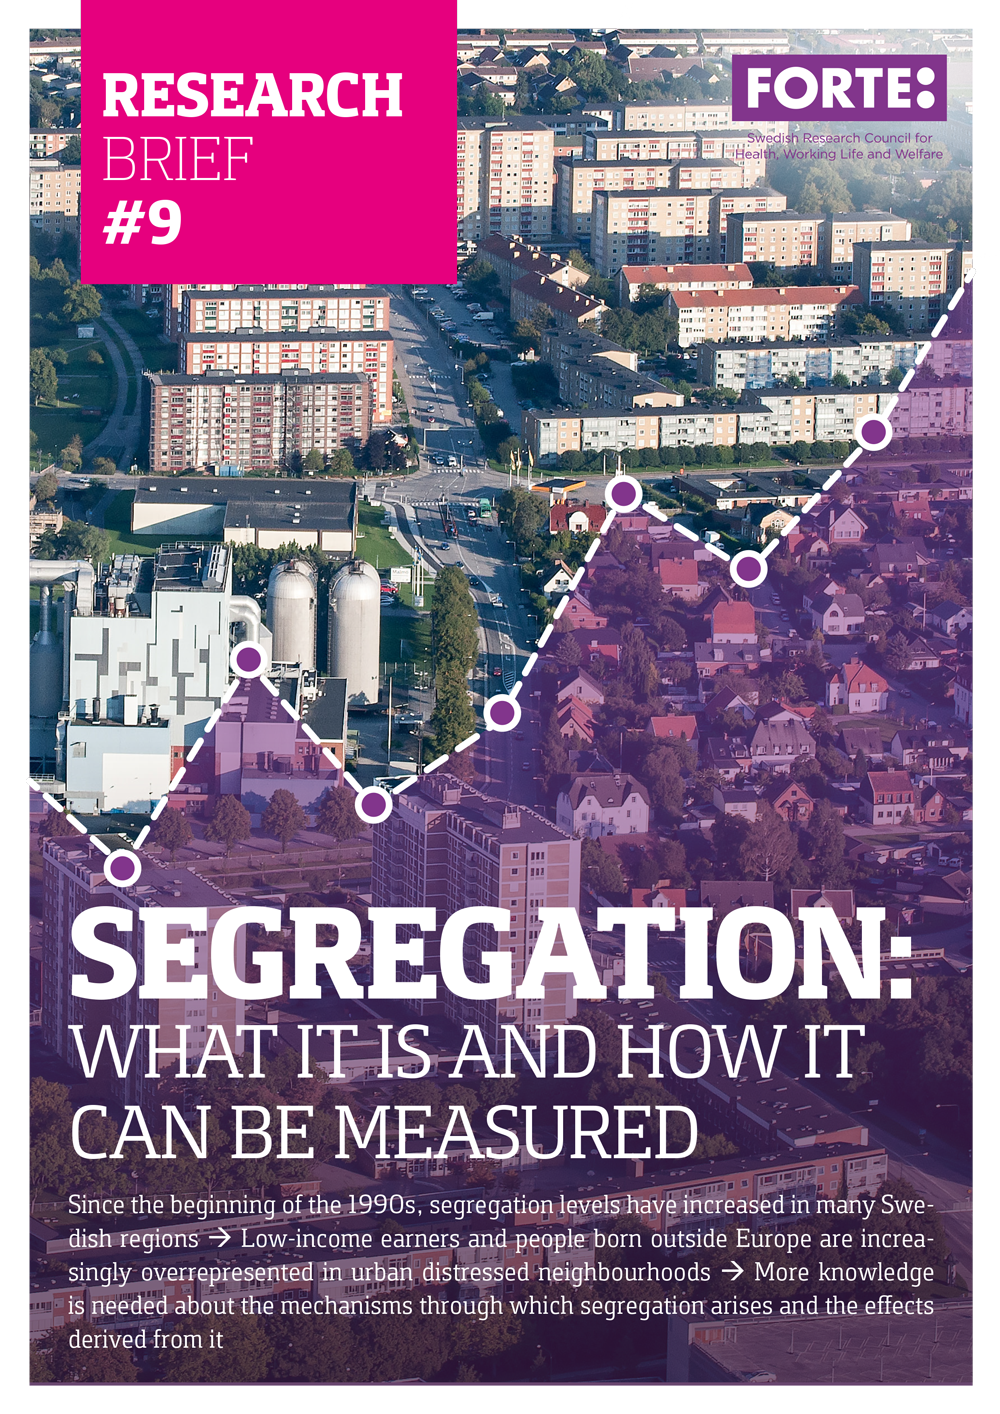 Research brief: Segregation - What it is and how it can be measured